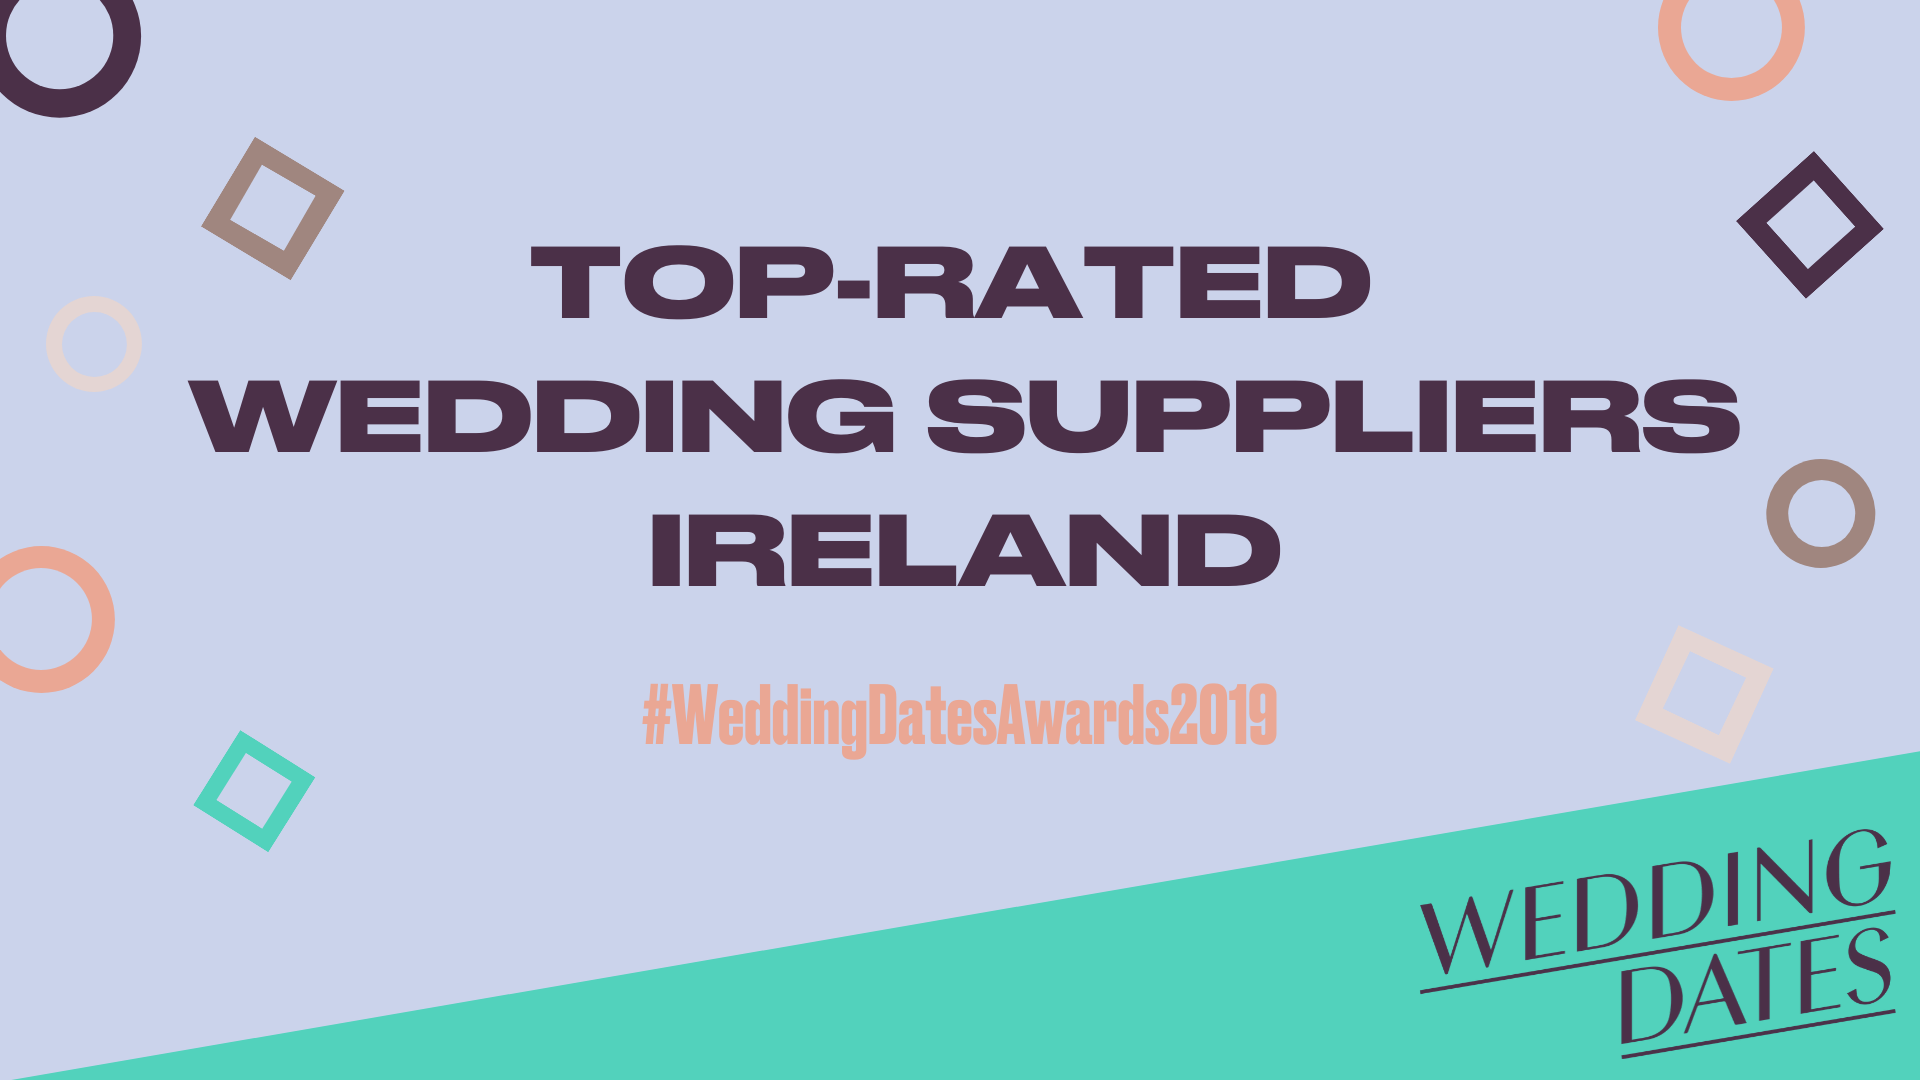 And The Best Suppliers In Ireland for 2019 Are........